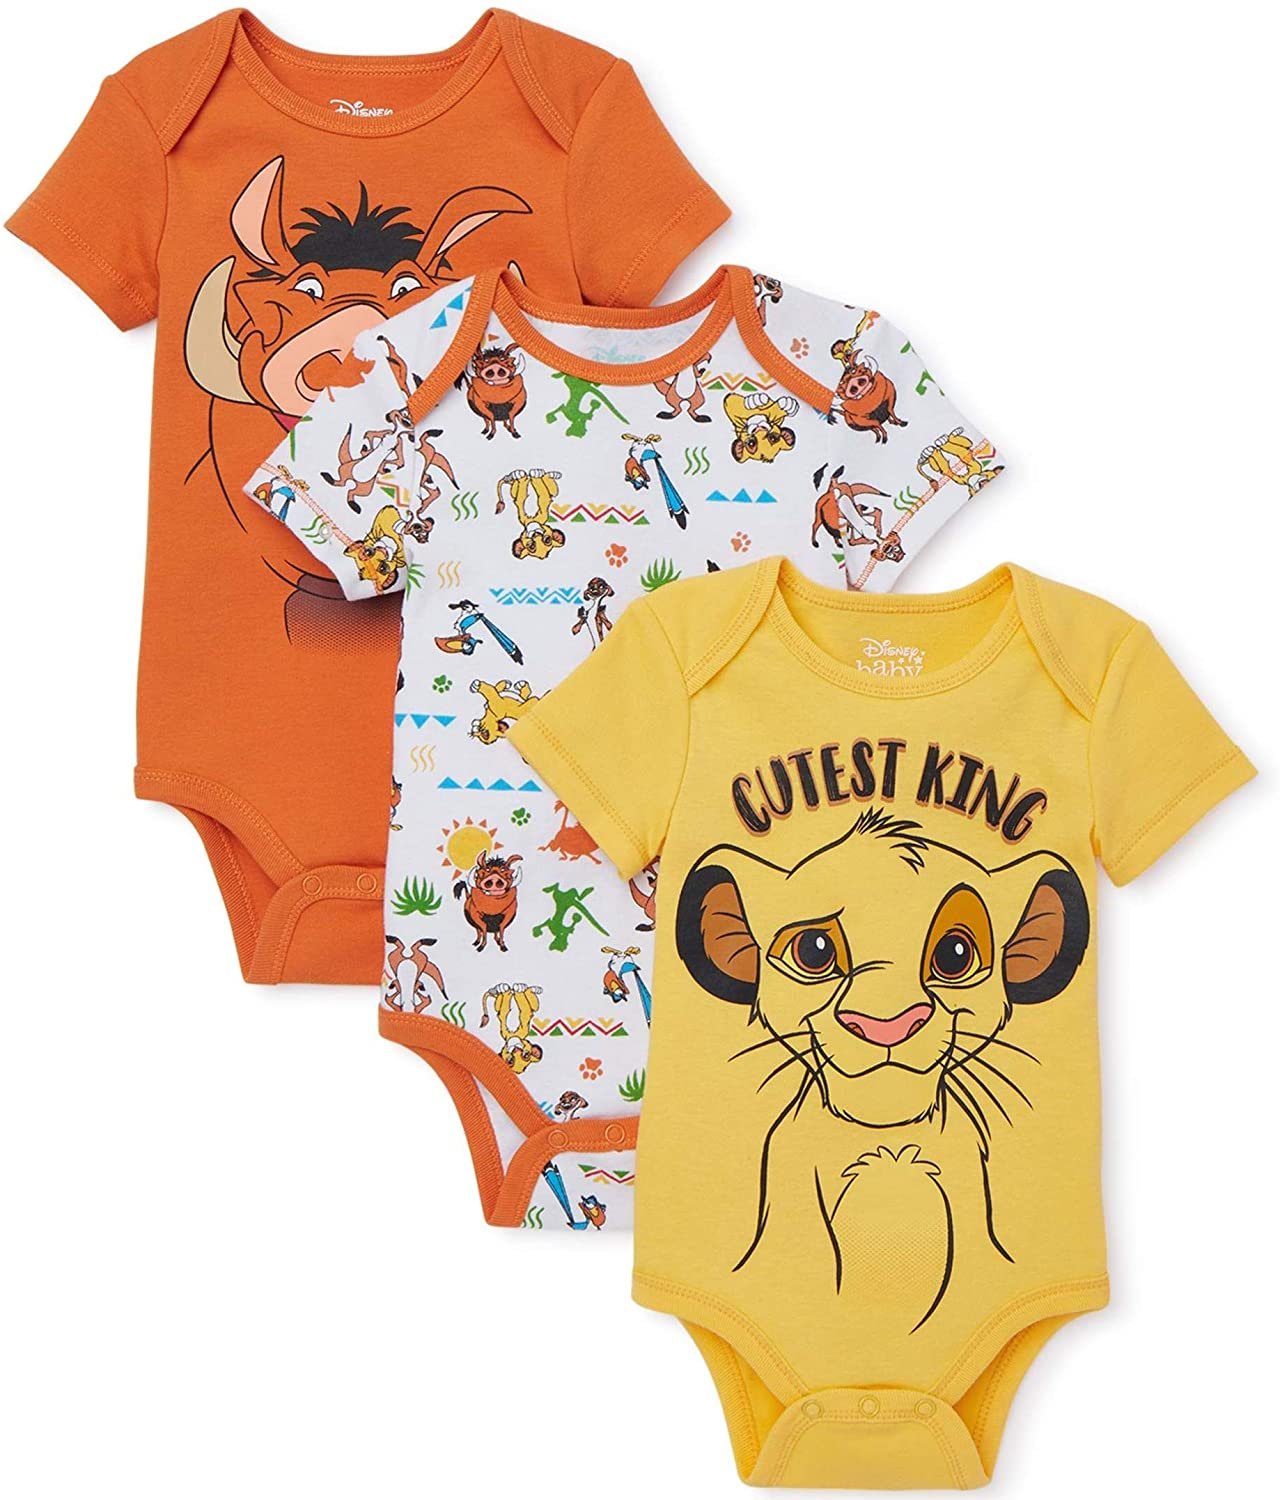 The Lion King 3-Pack Creeper Bodysuit Cutest King Set for Babies